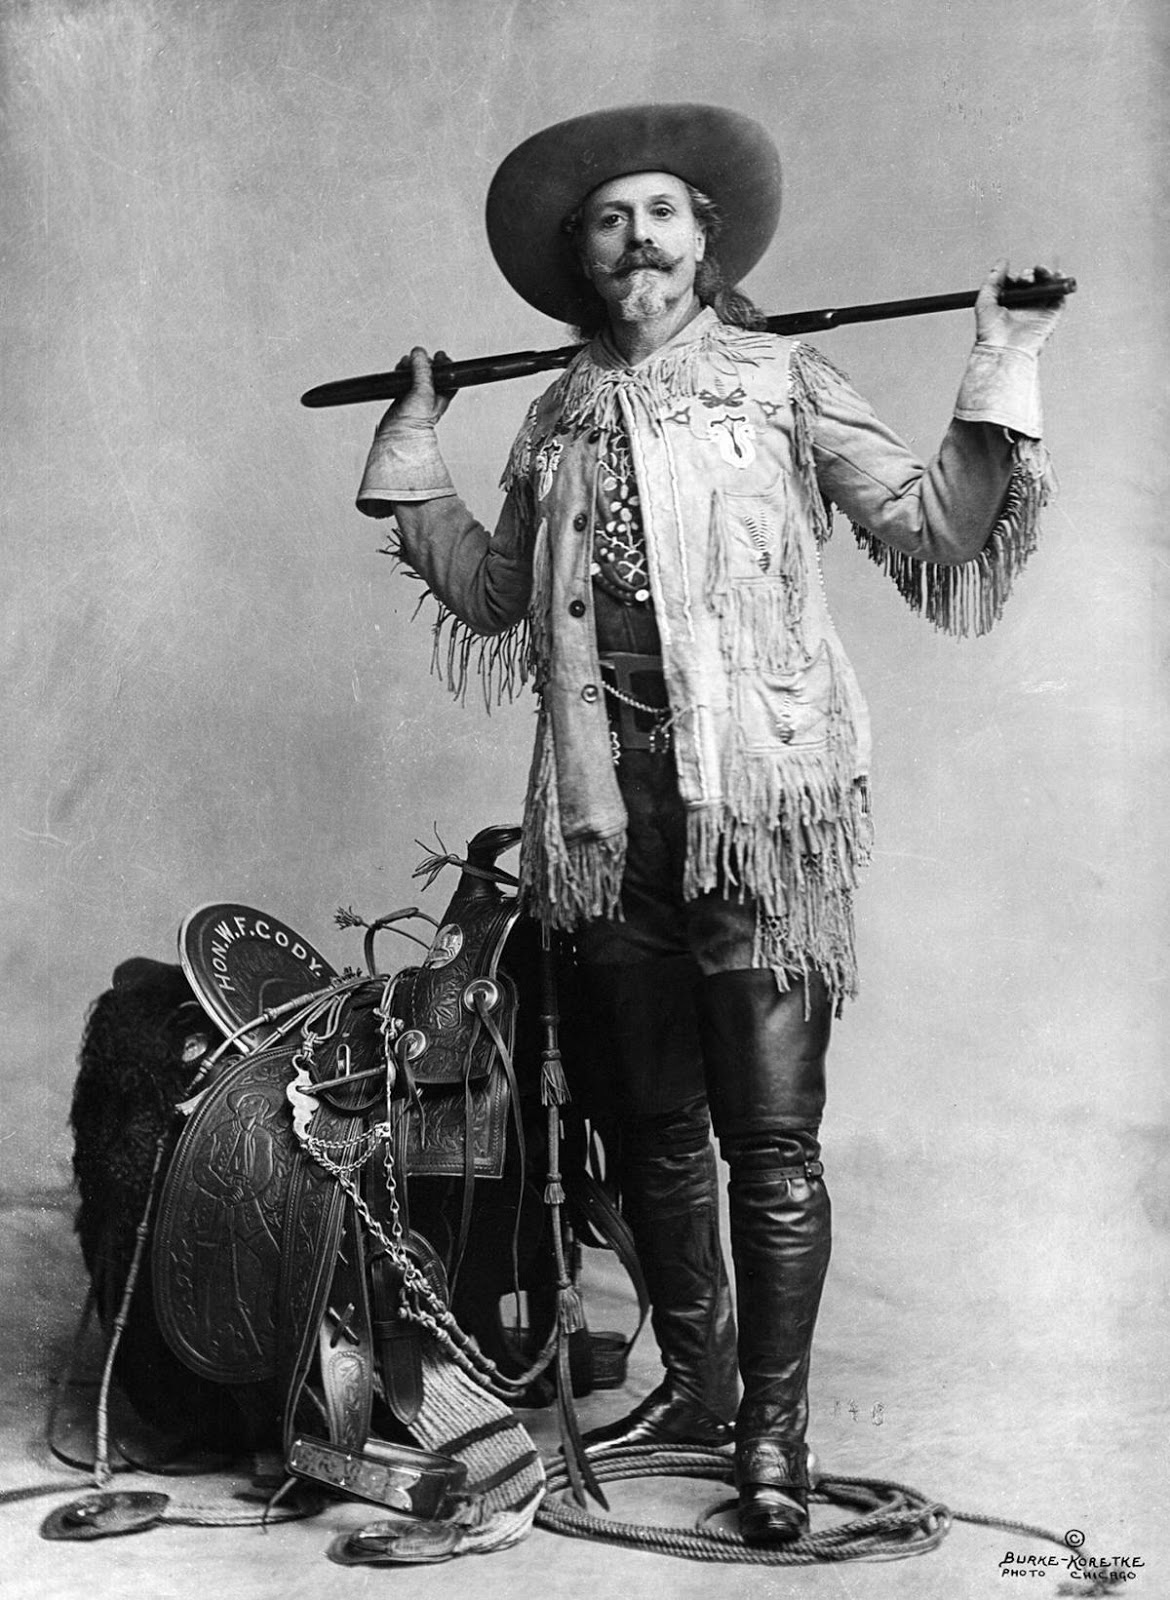 Buffalo Bill, William Frederick Cody